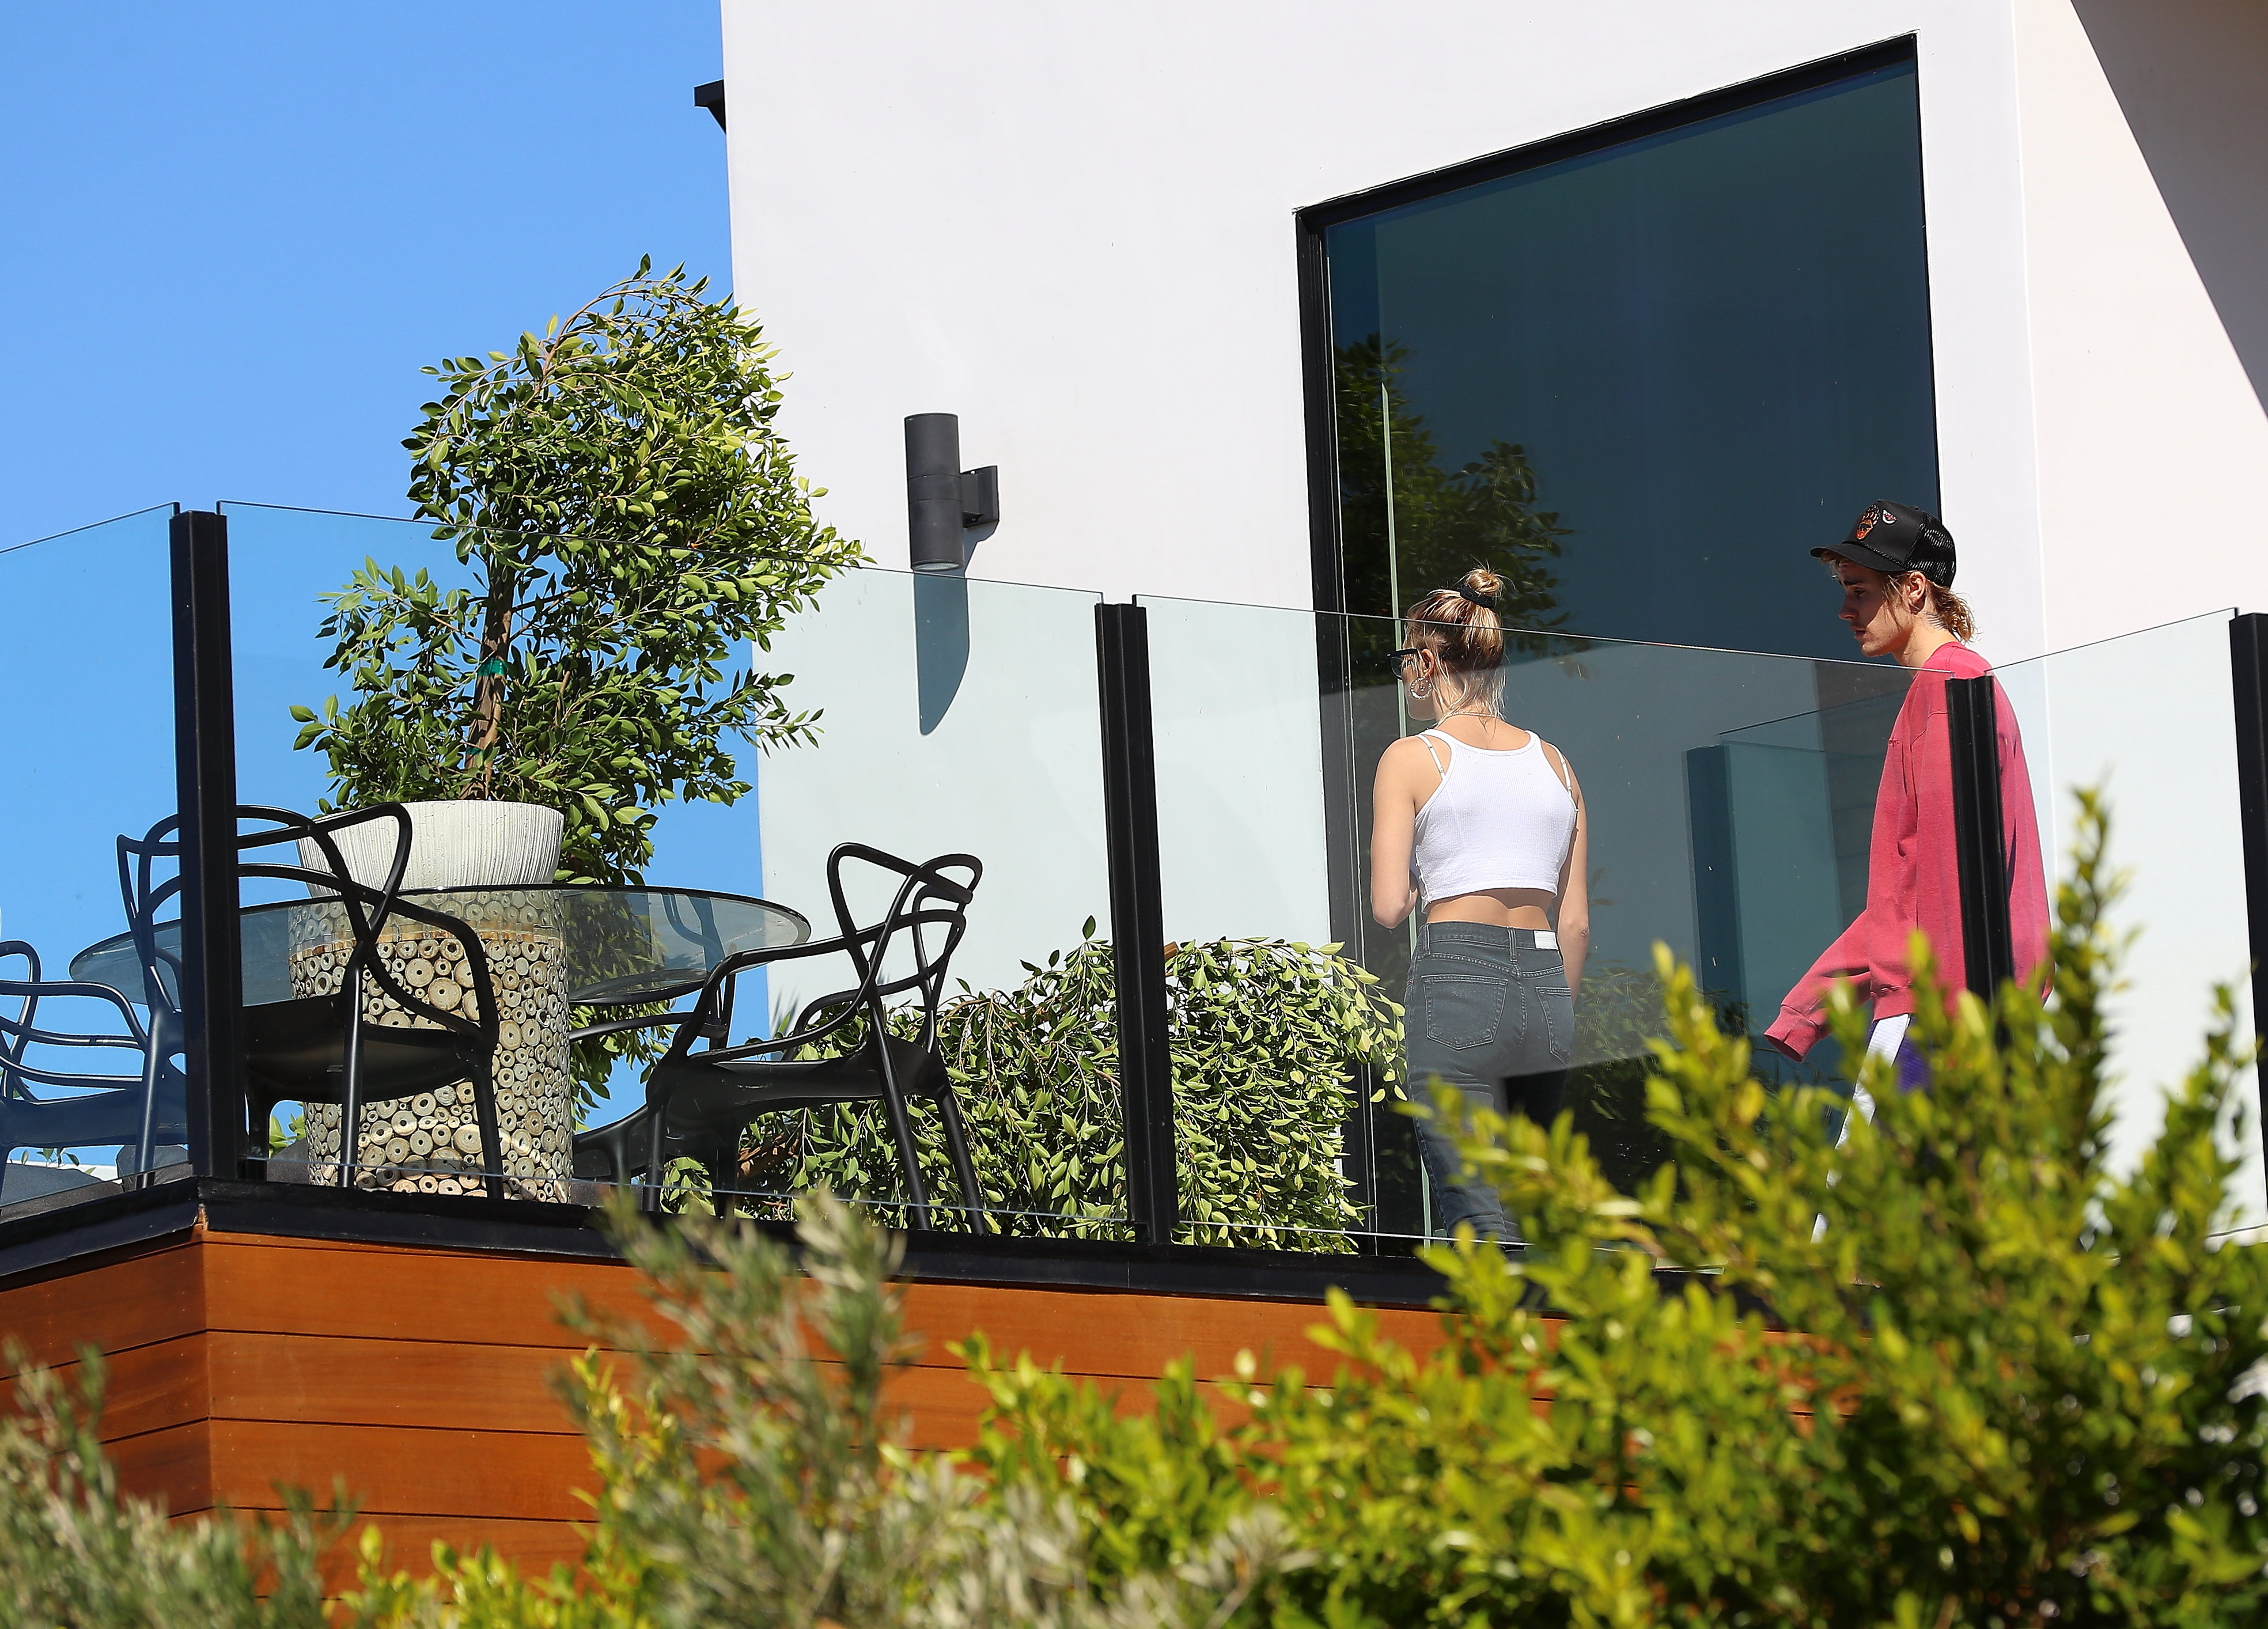 justin-bieber-and-hailey-on-the-ledge-of-a-home-they-are-viewing-to-buy-in-los-angeles-ca-2